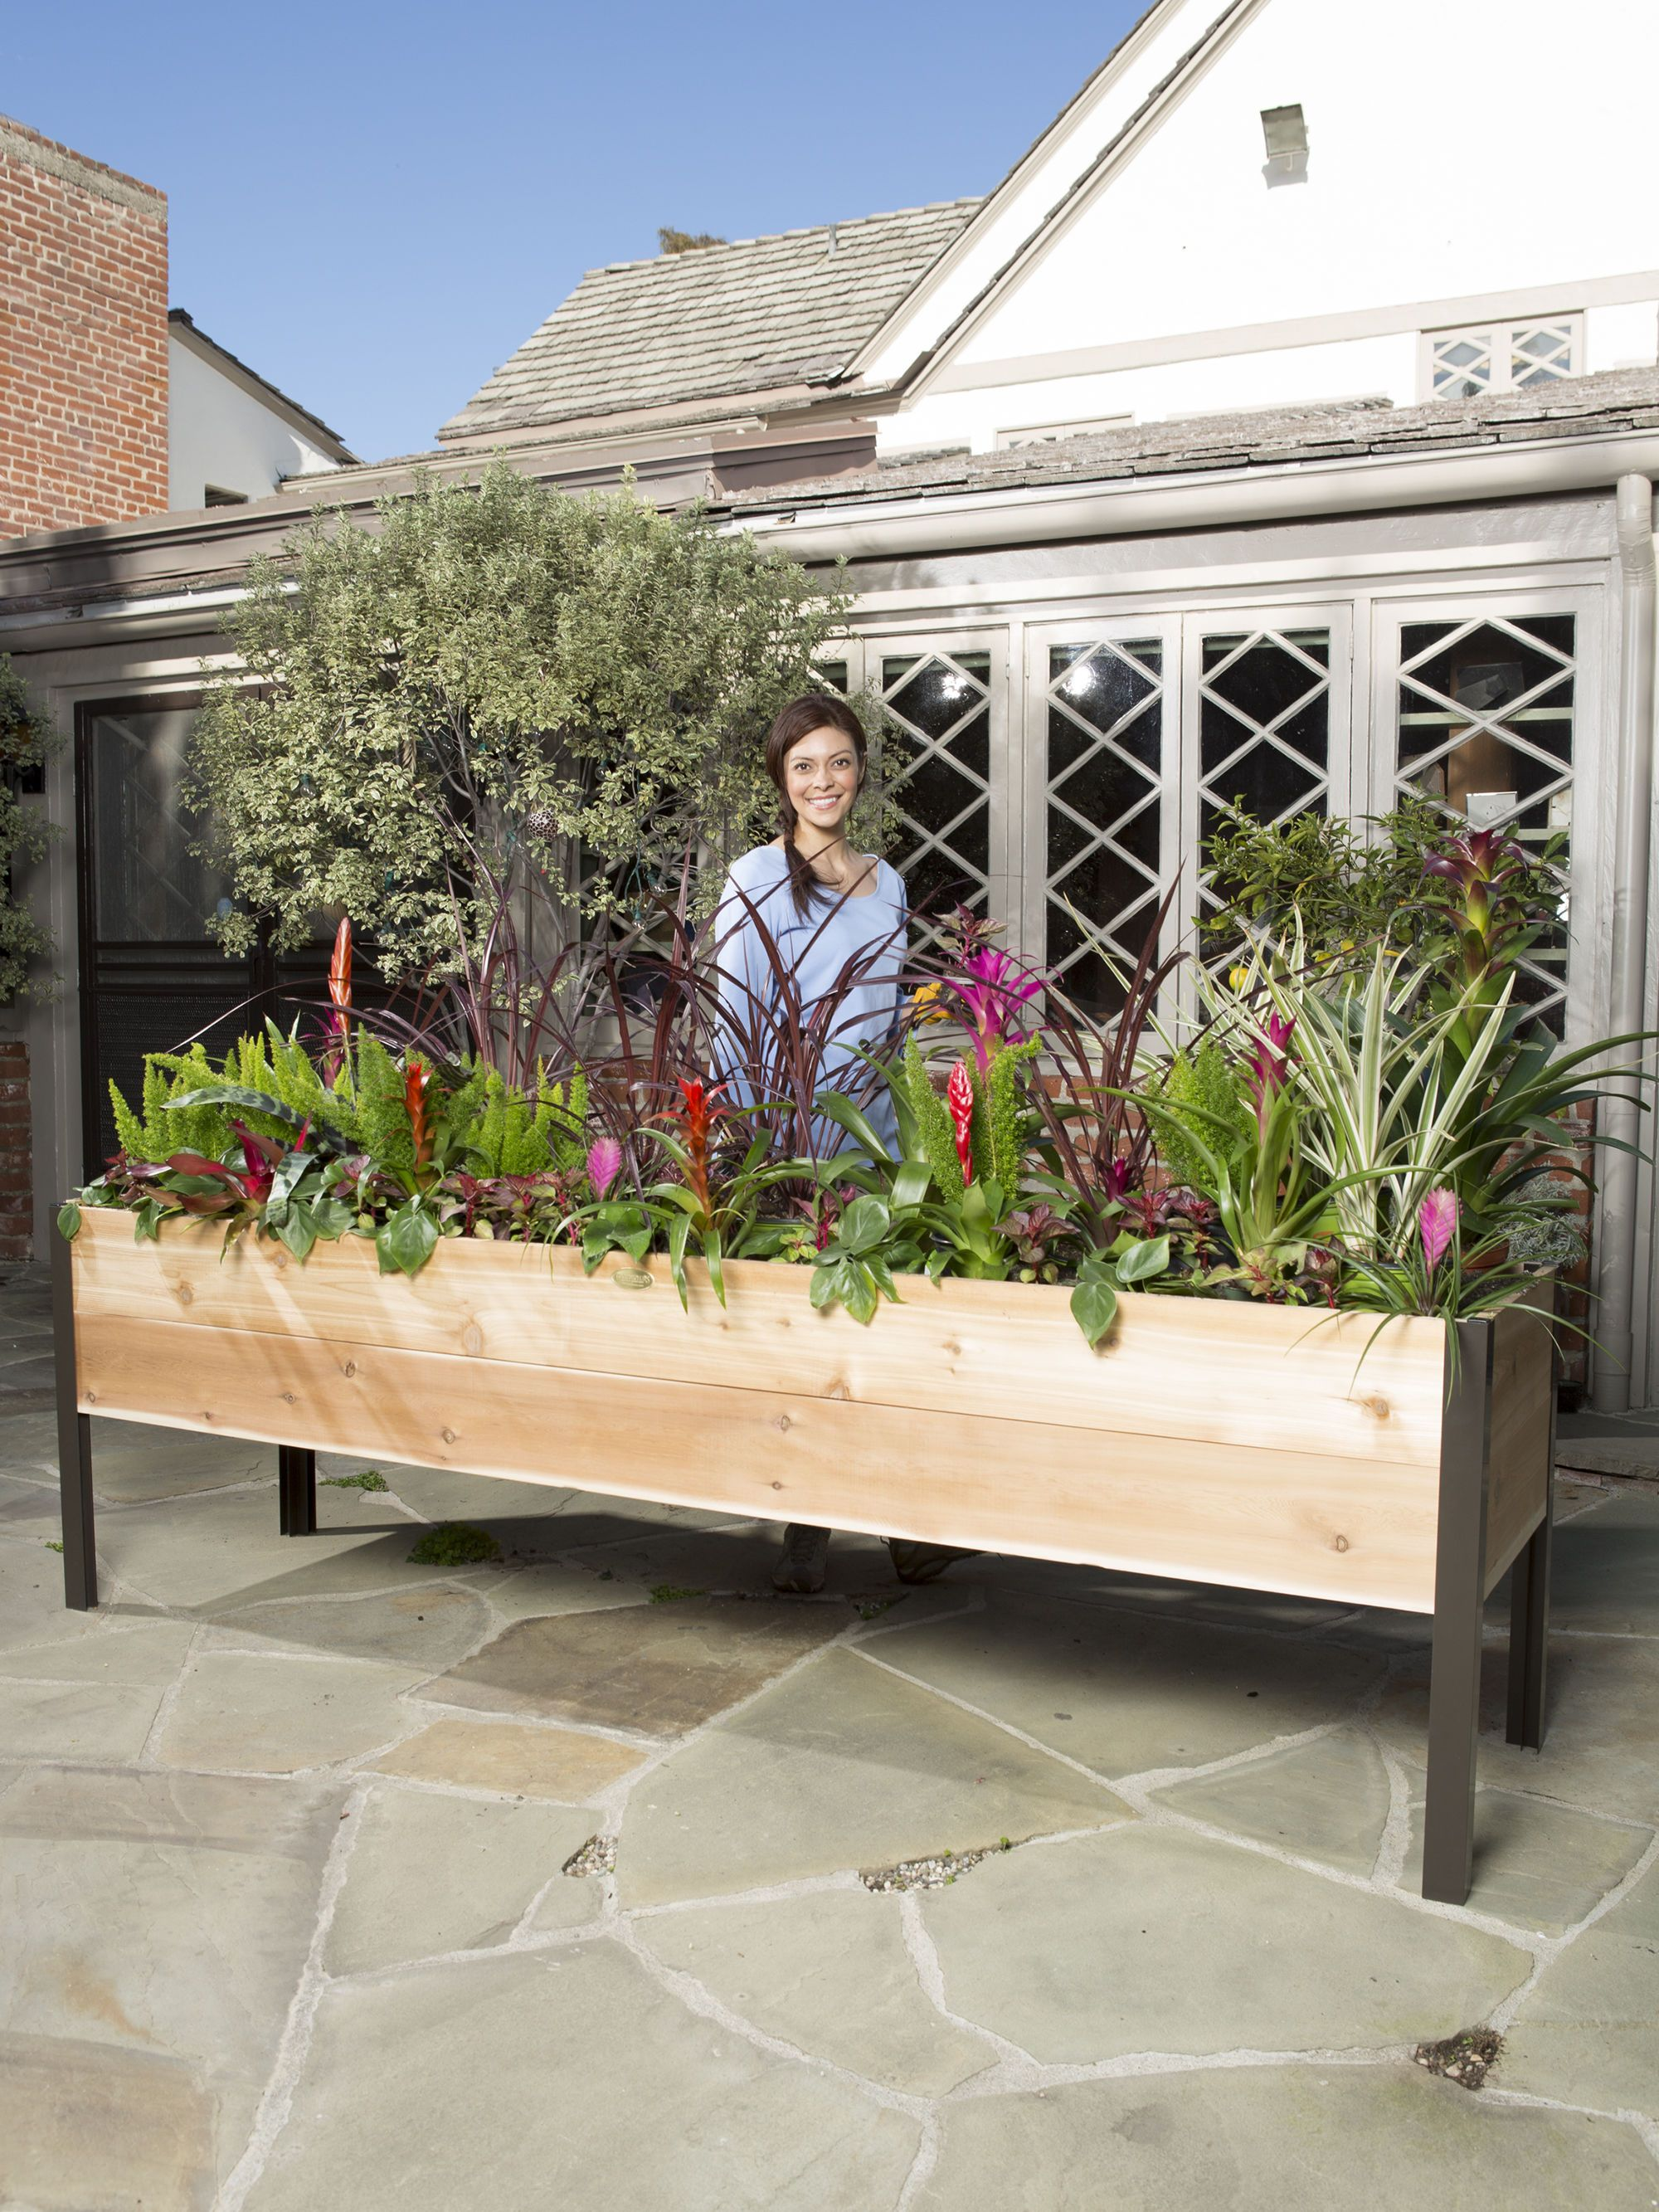 Mobile Planter Boxes Mobile Garden Boxes Other Home Garden Gumtree Australia Moreland Mobile Planter Boxes Pinterest Garden Boxes